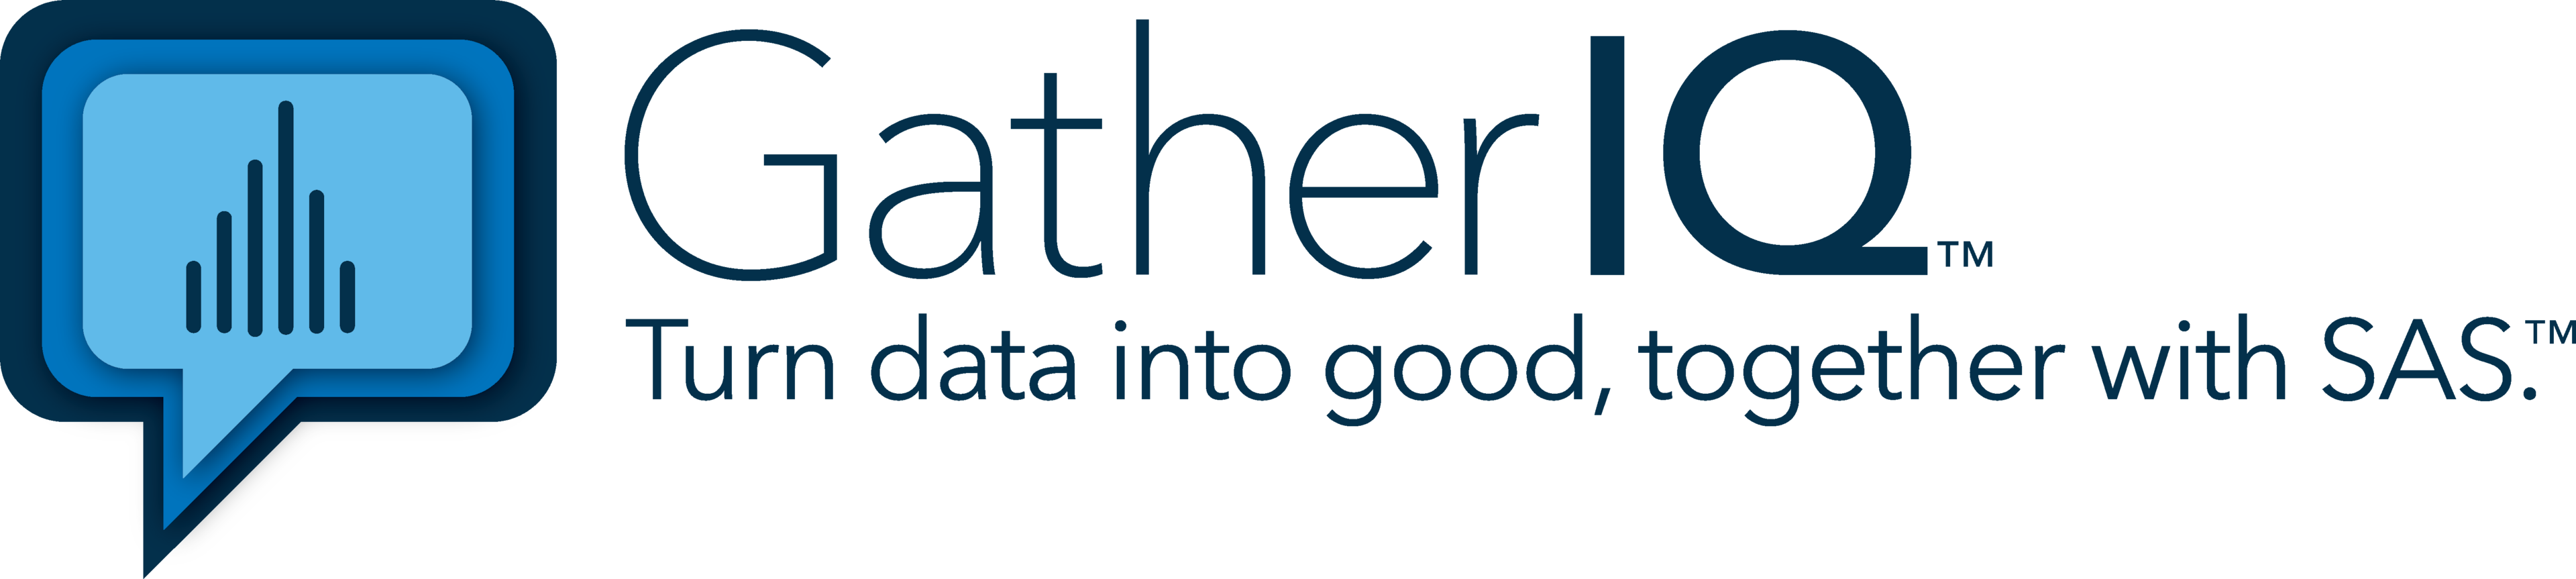 GatherIQ Turn Data Into Good, Together With SAS logo